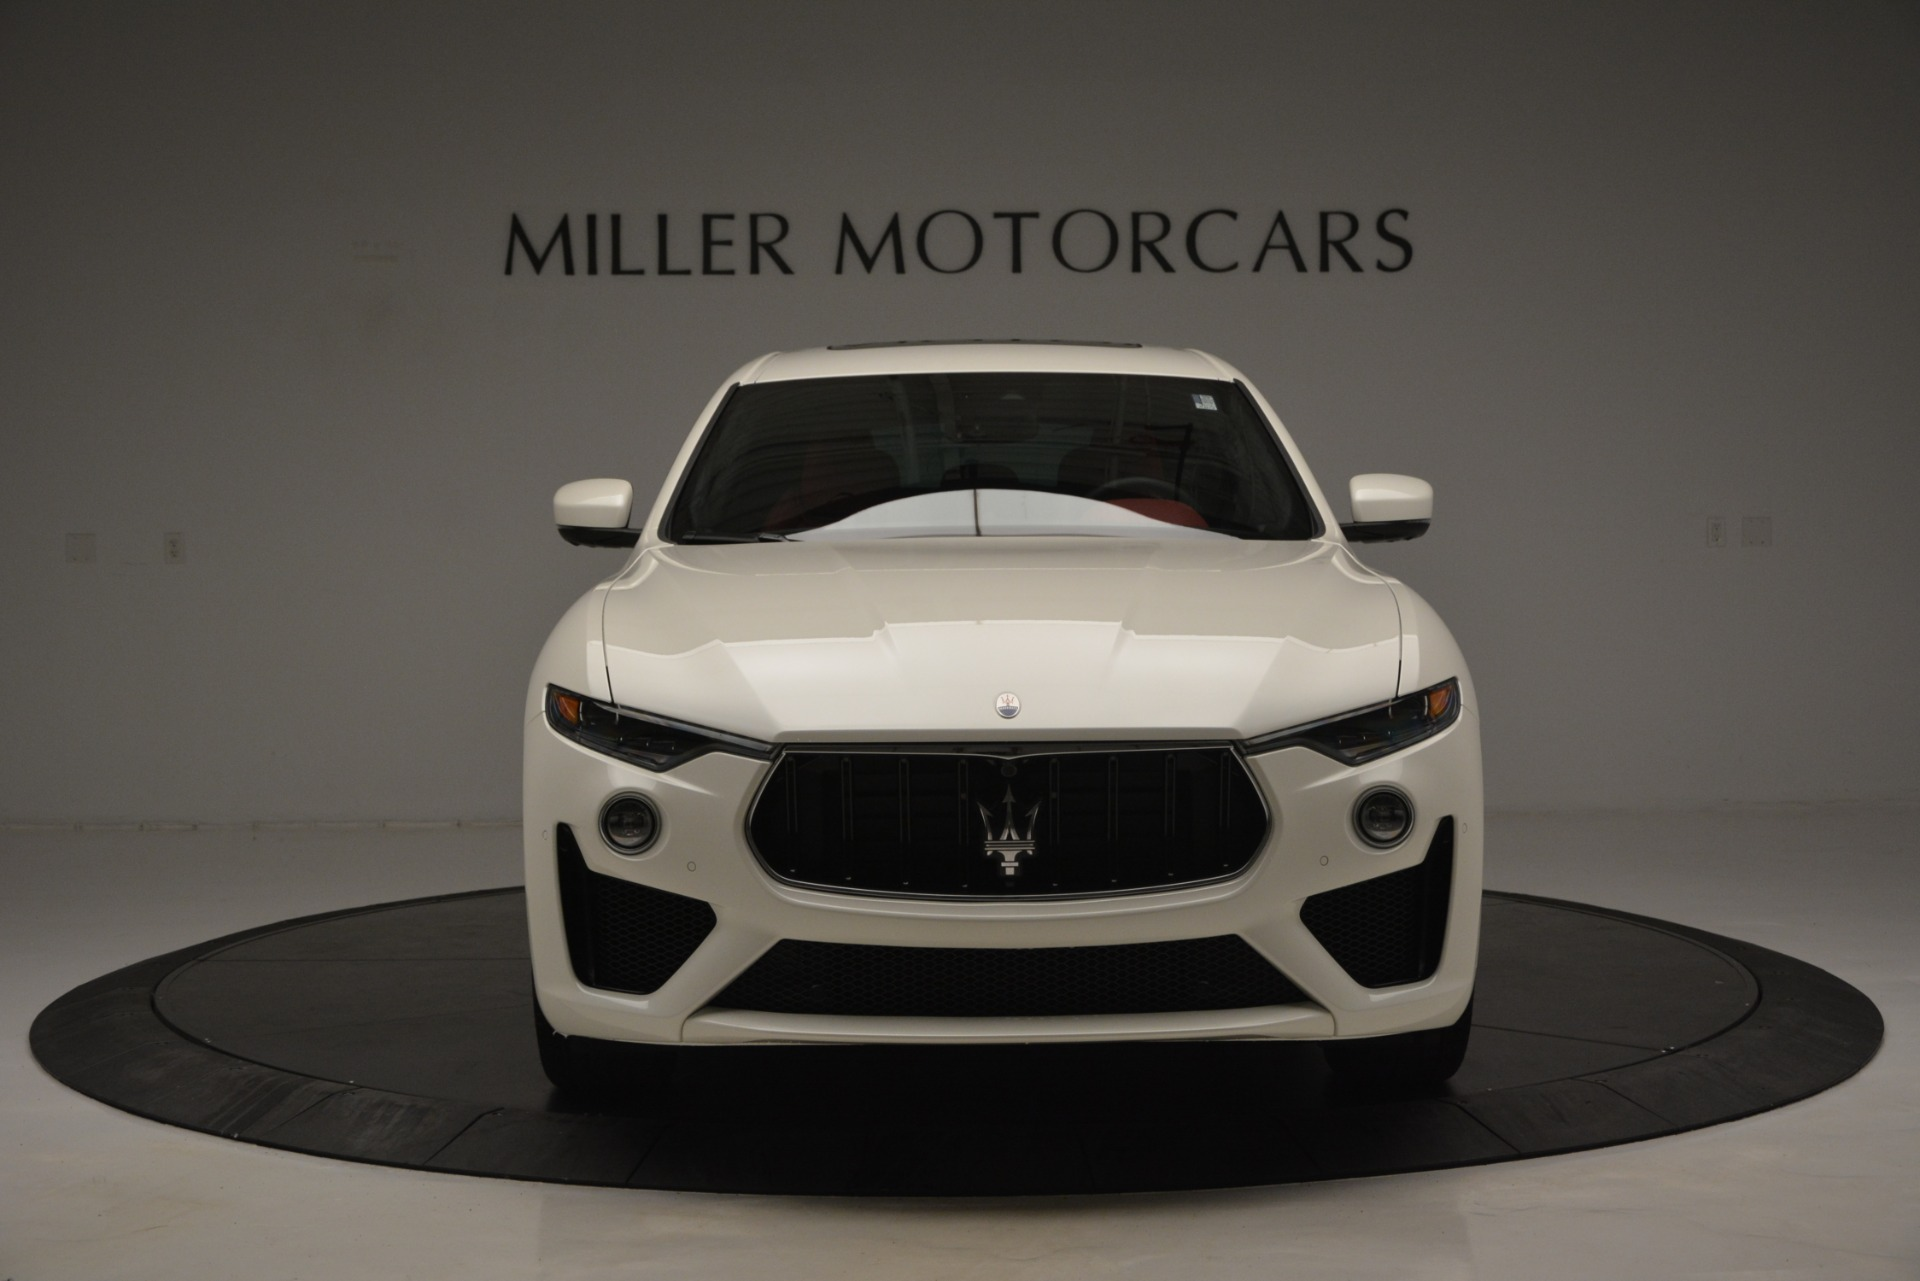 New 2019 Maserati Levante GTS For Sale In Westport, CT 2883_p16